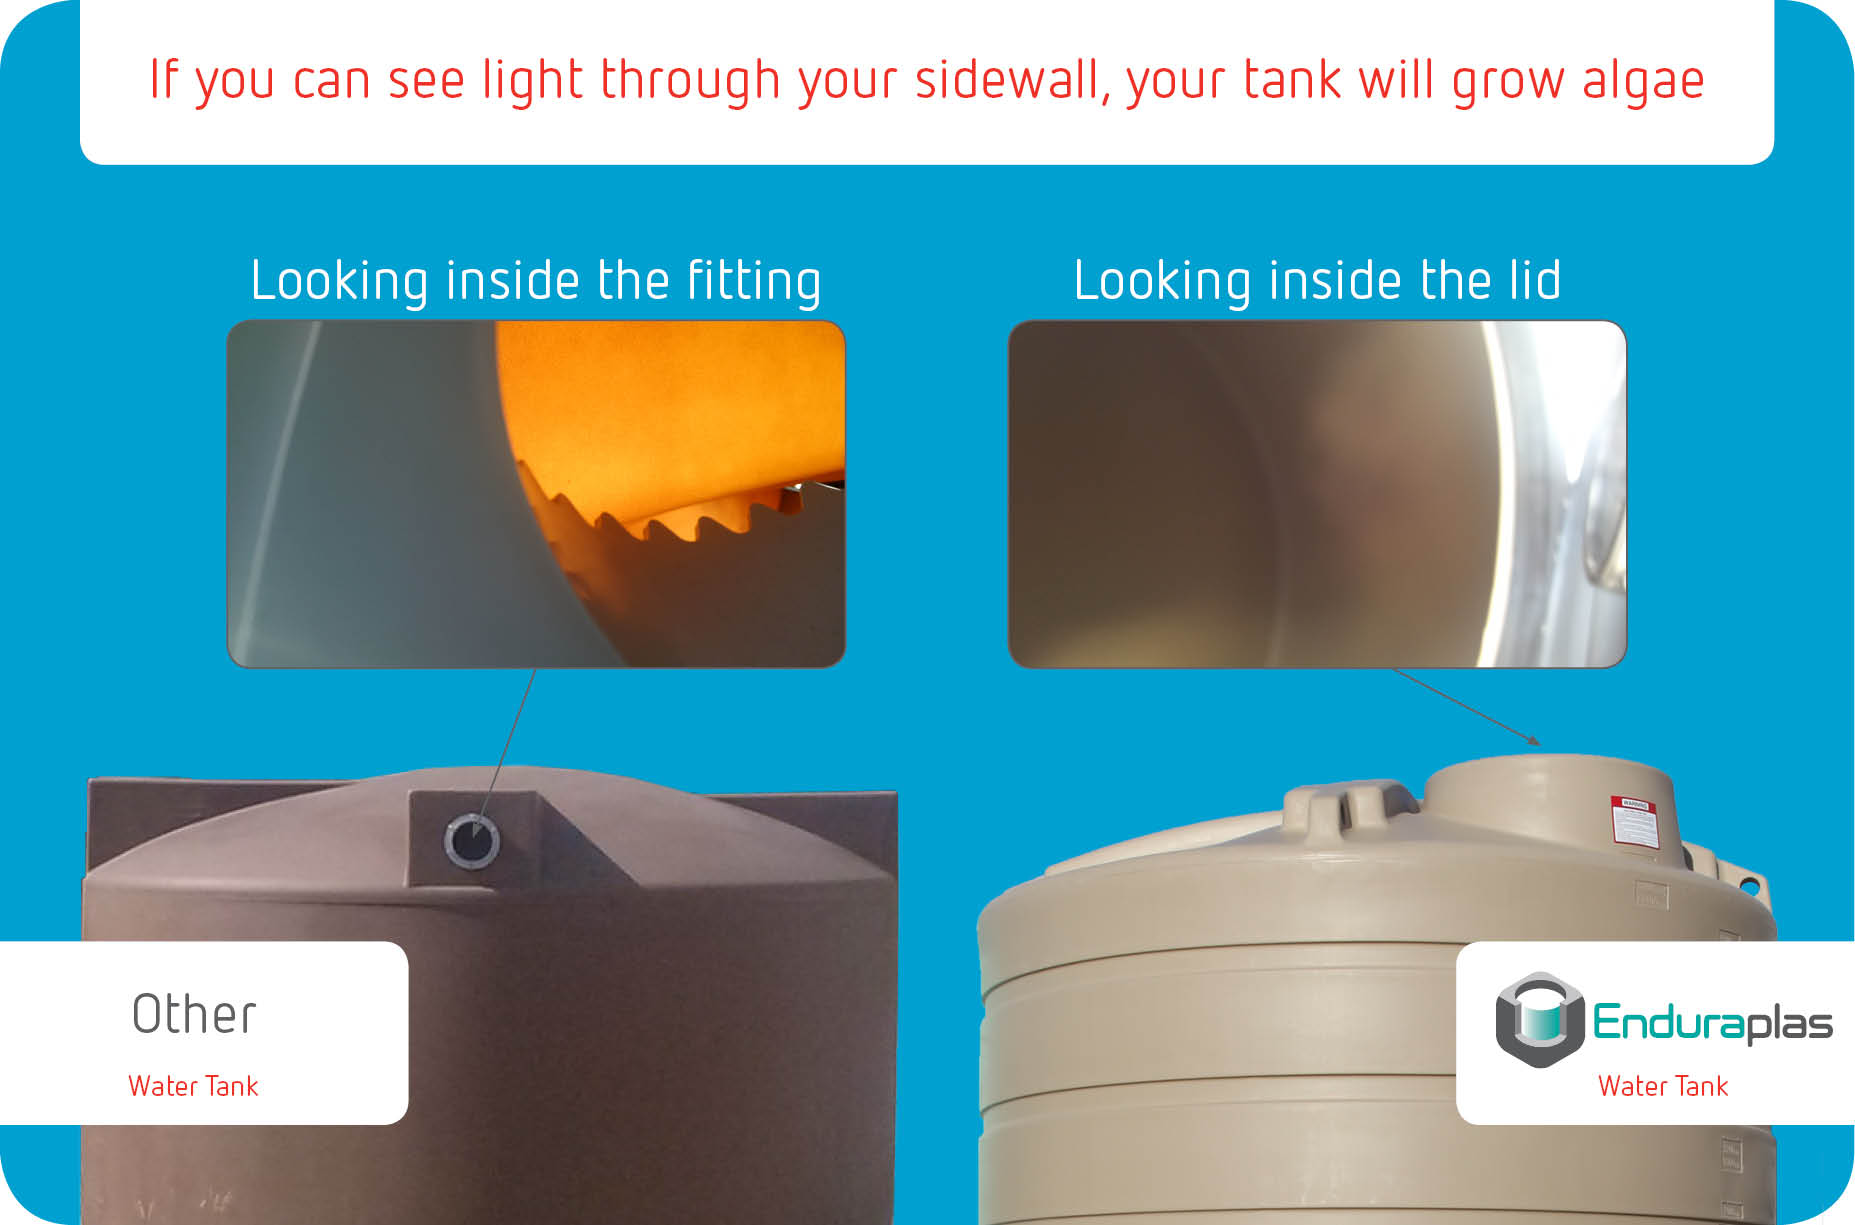 Water-tank-comparison-info-graphic1.jpg